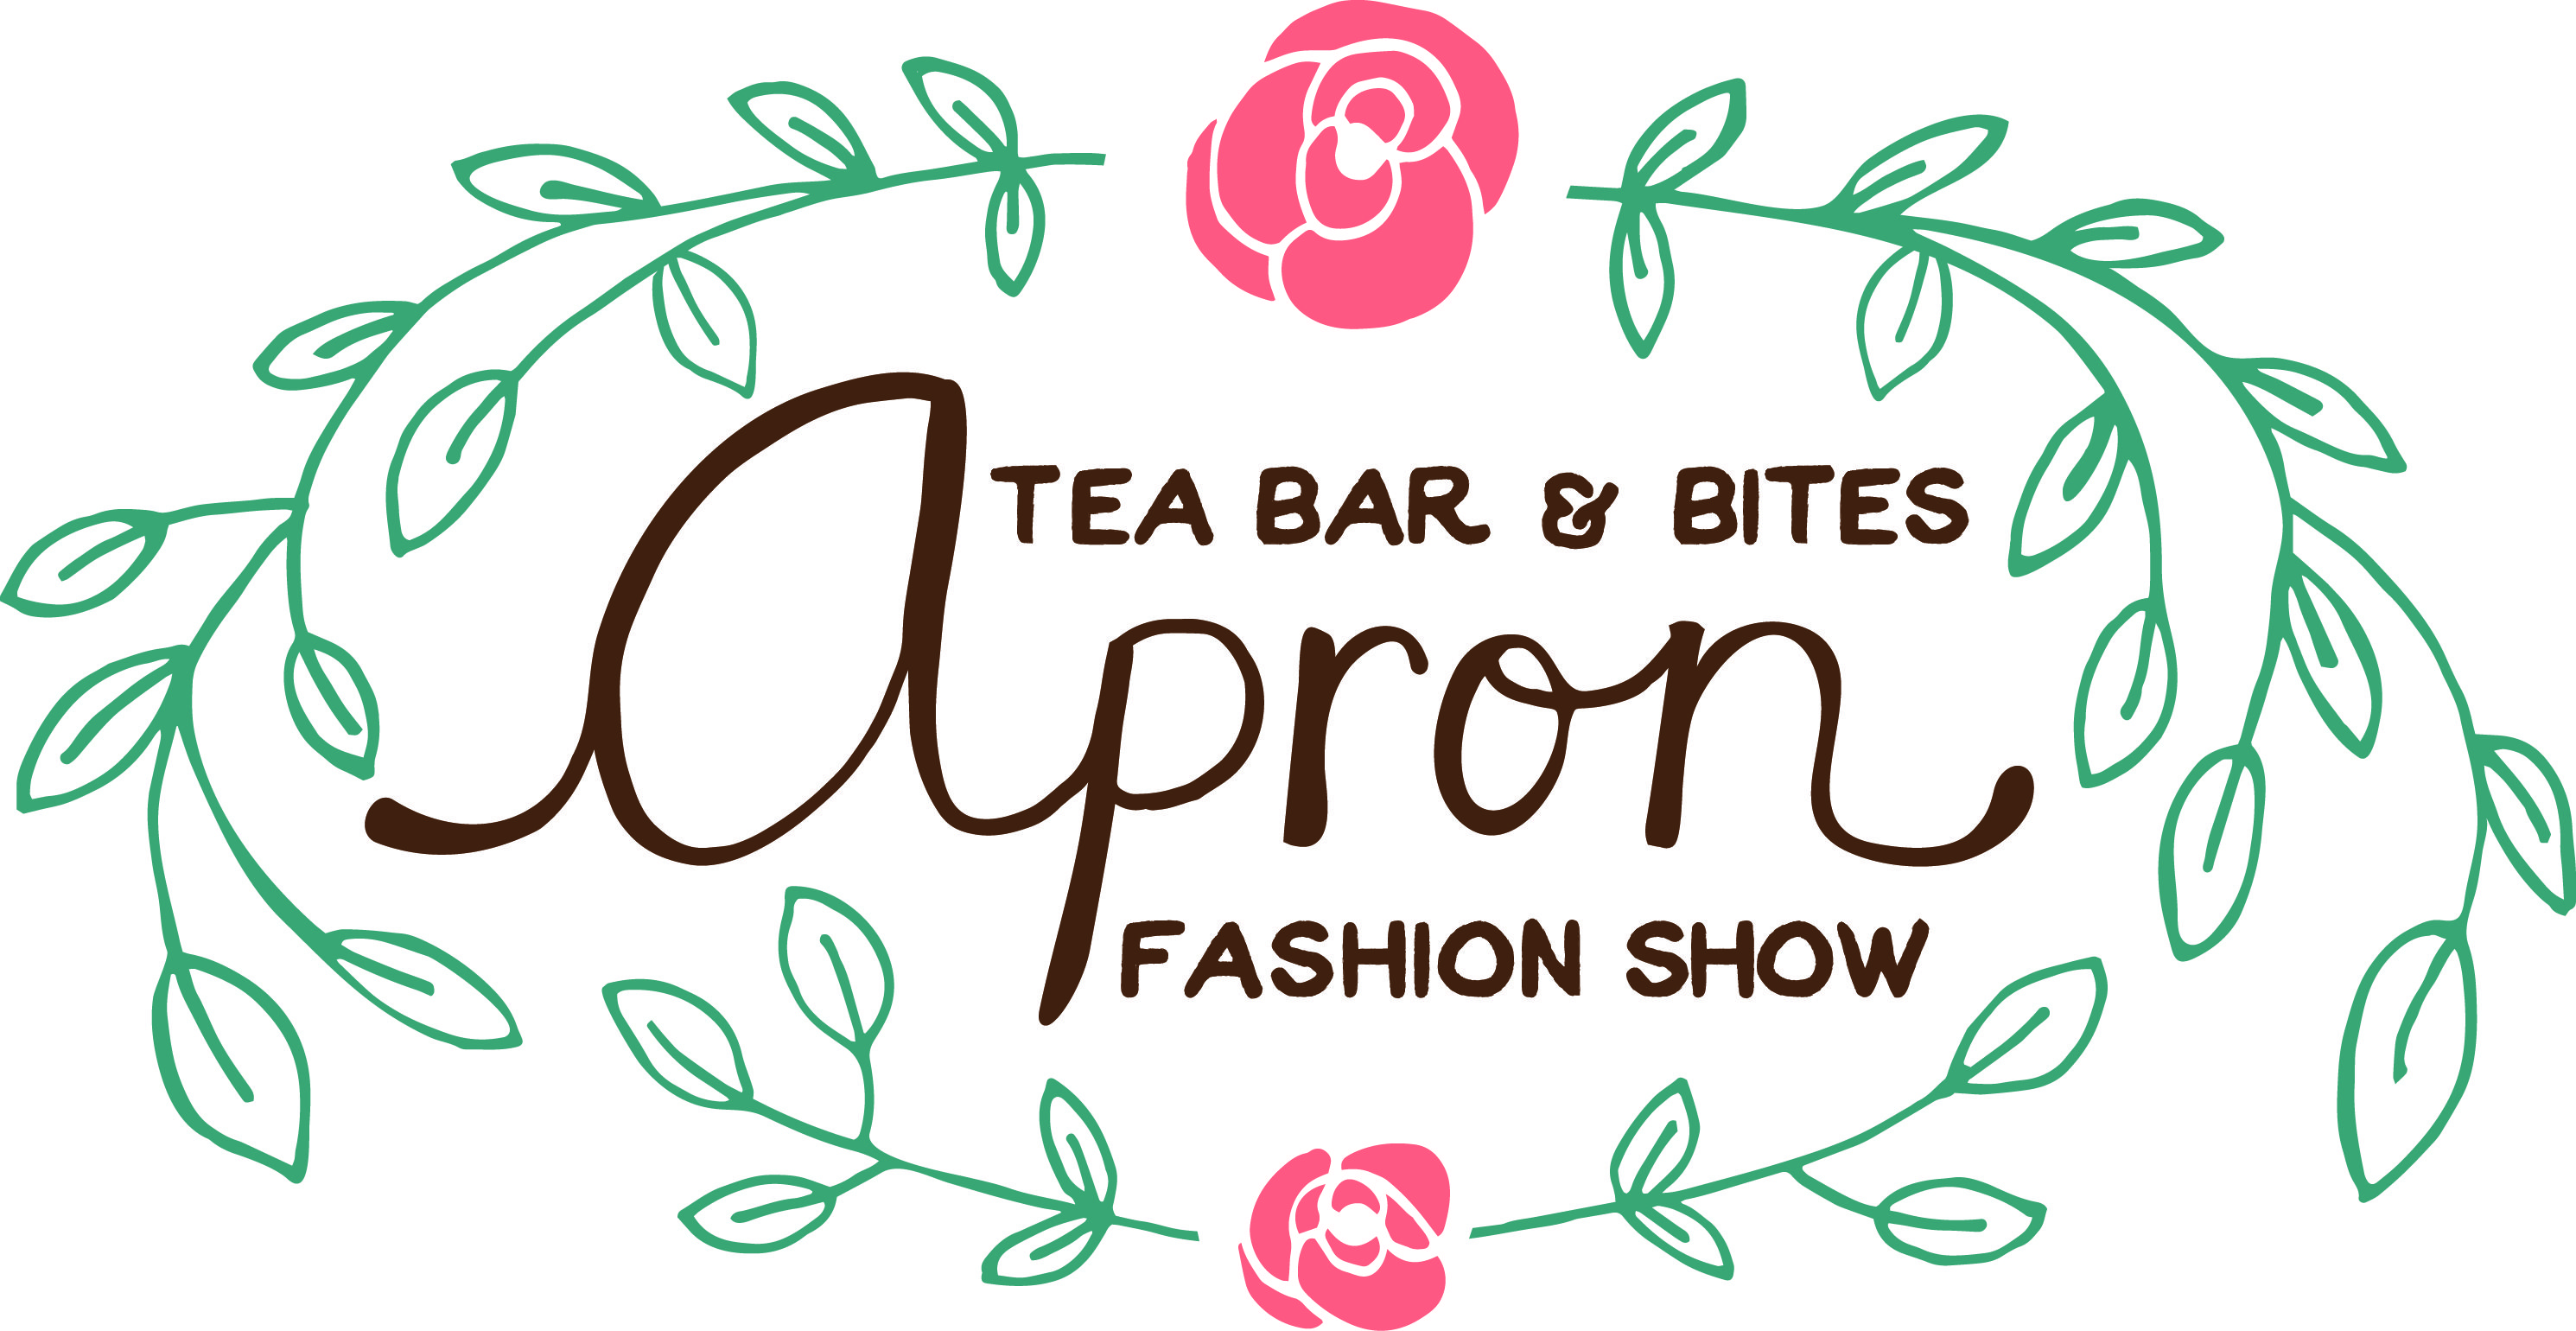 Tea Bar & Bites Apron Fashion Show and Silent Auction in Springfield, MO.